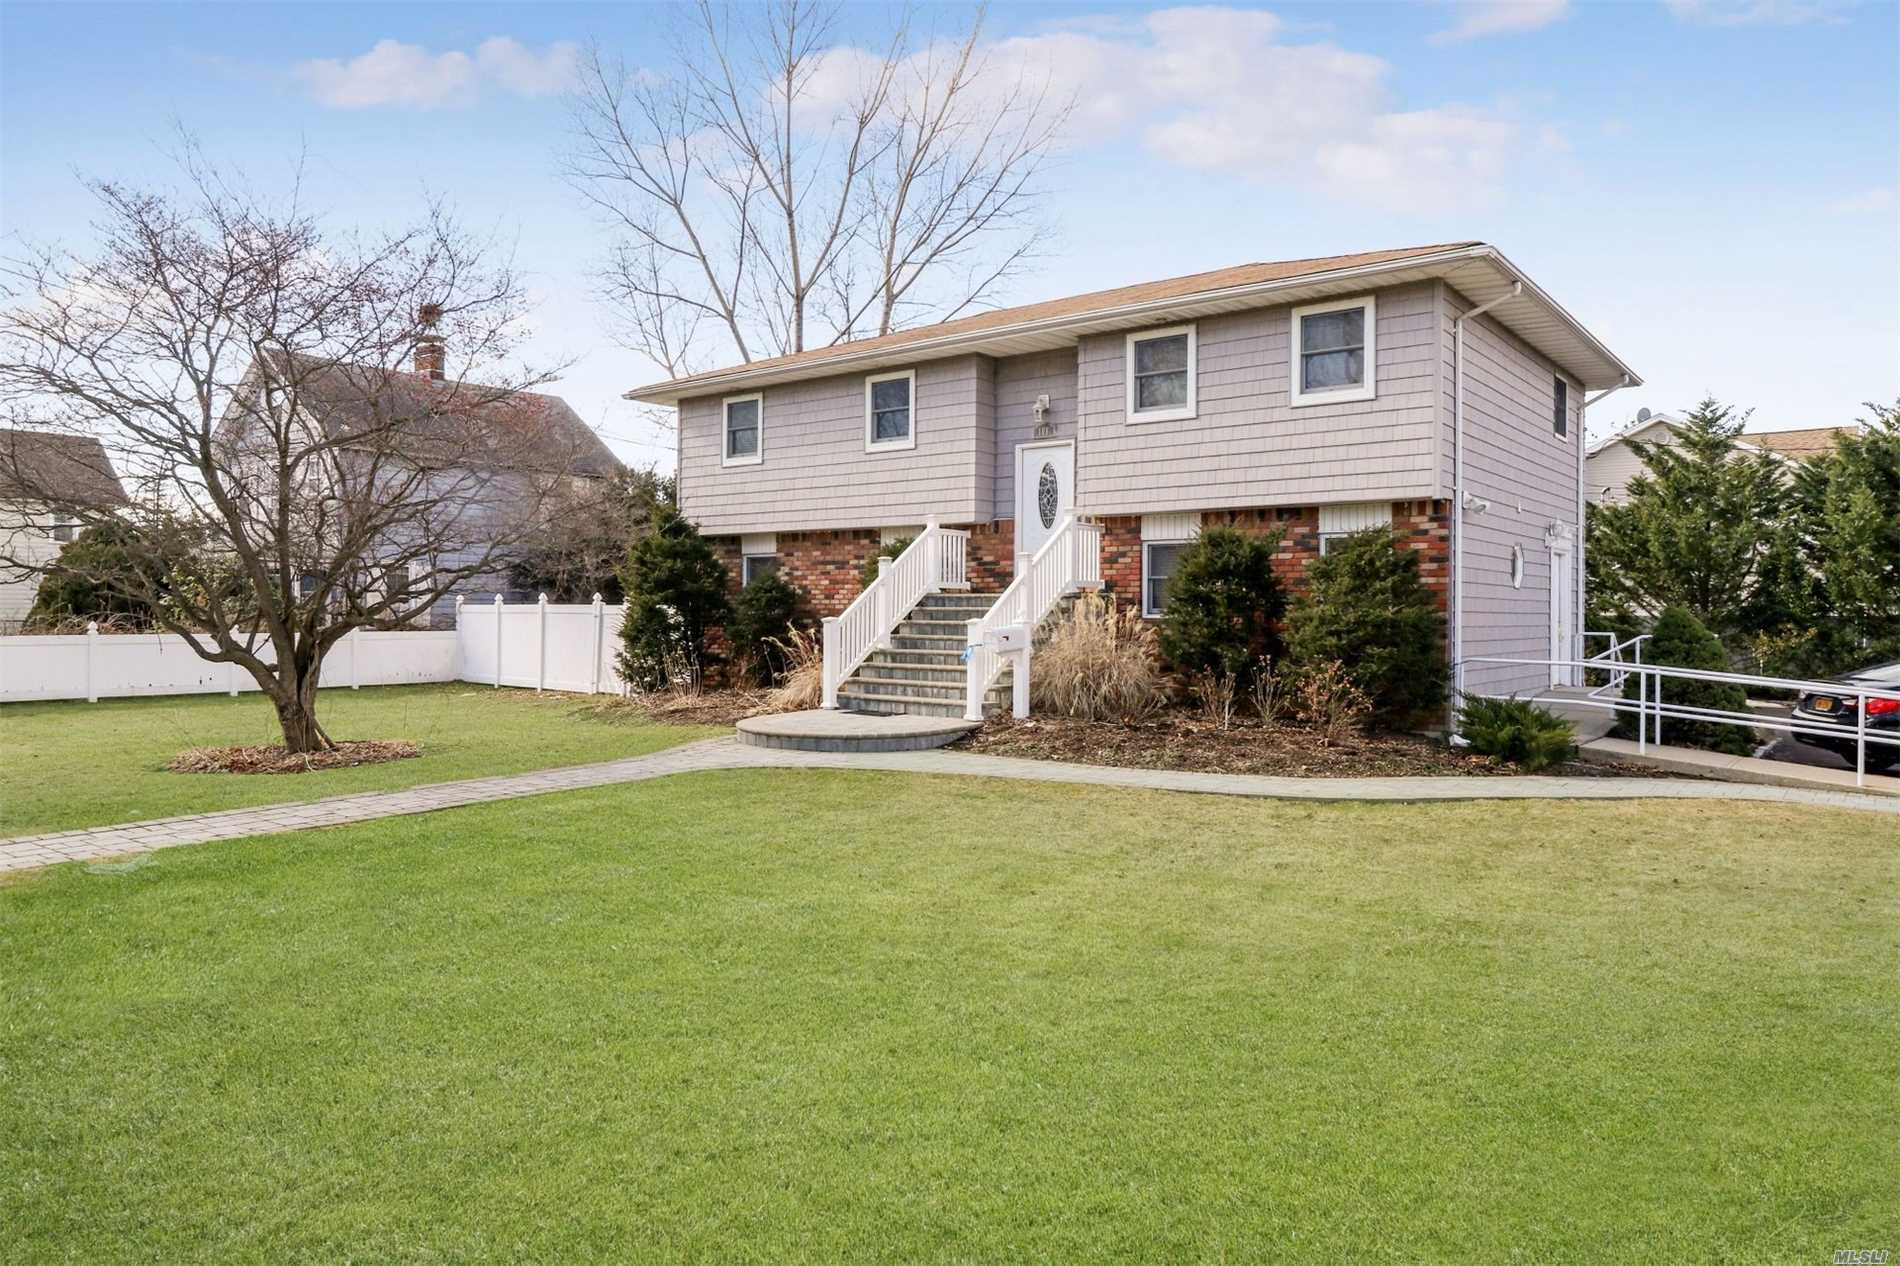 Photo of home for sale at 108 Higbie Ln, West Islip NY